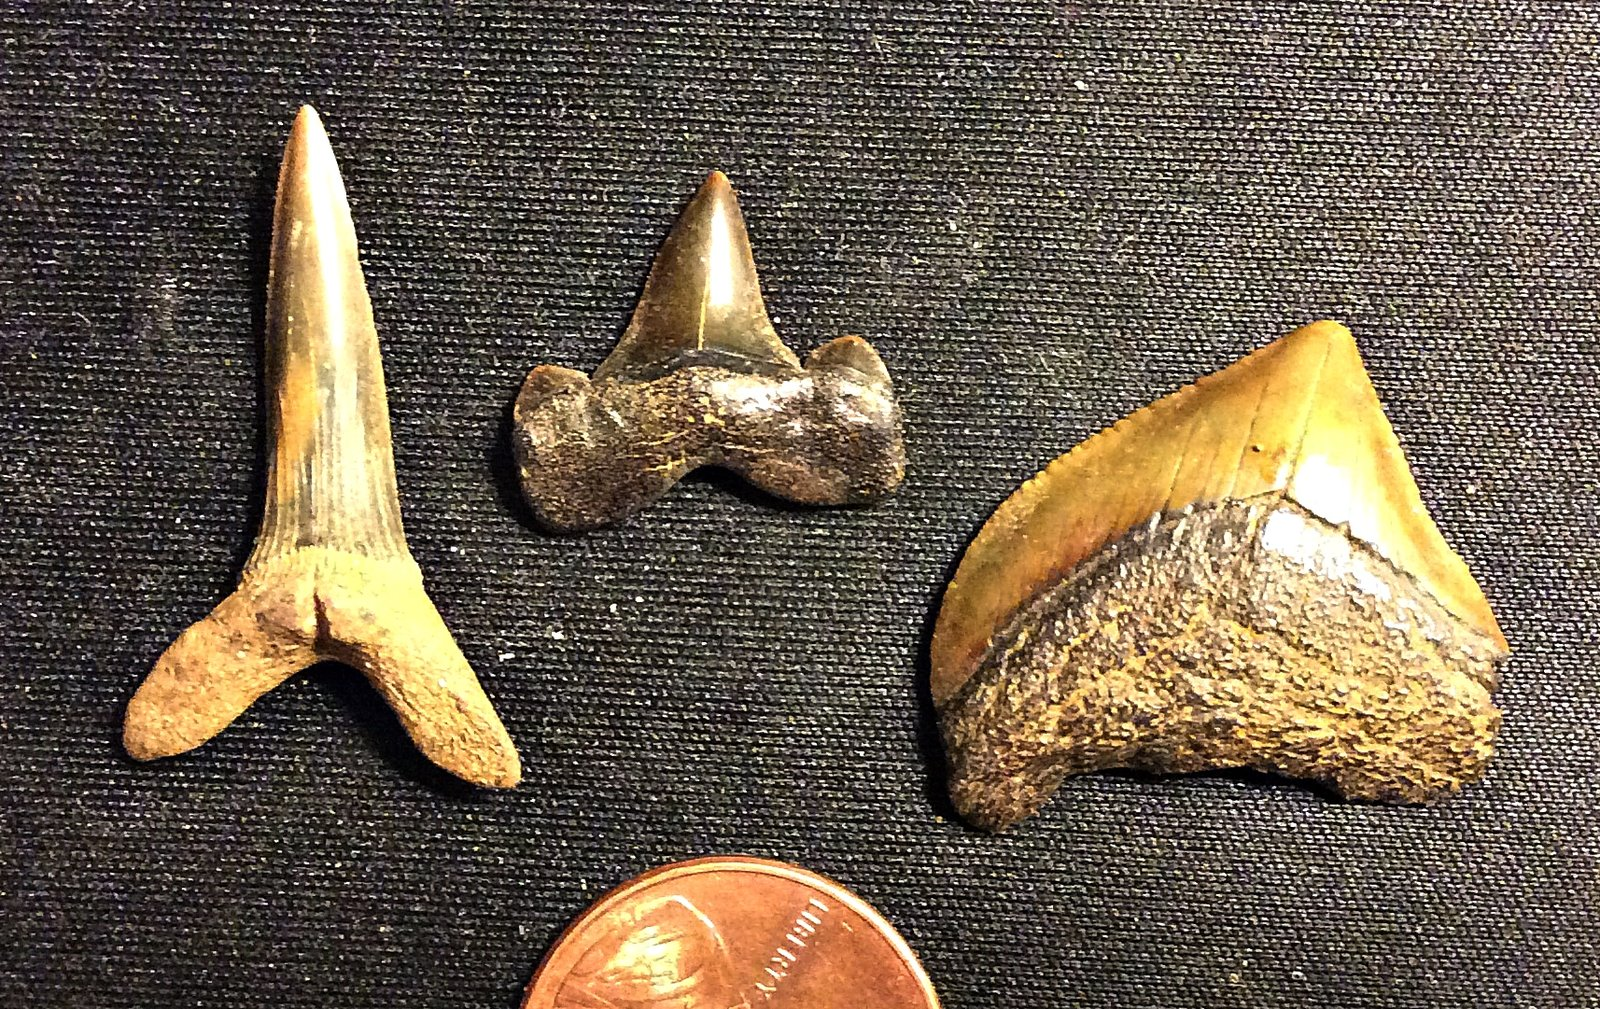 Cretaceous Shark Teeth from Big Brook, N.J.